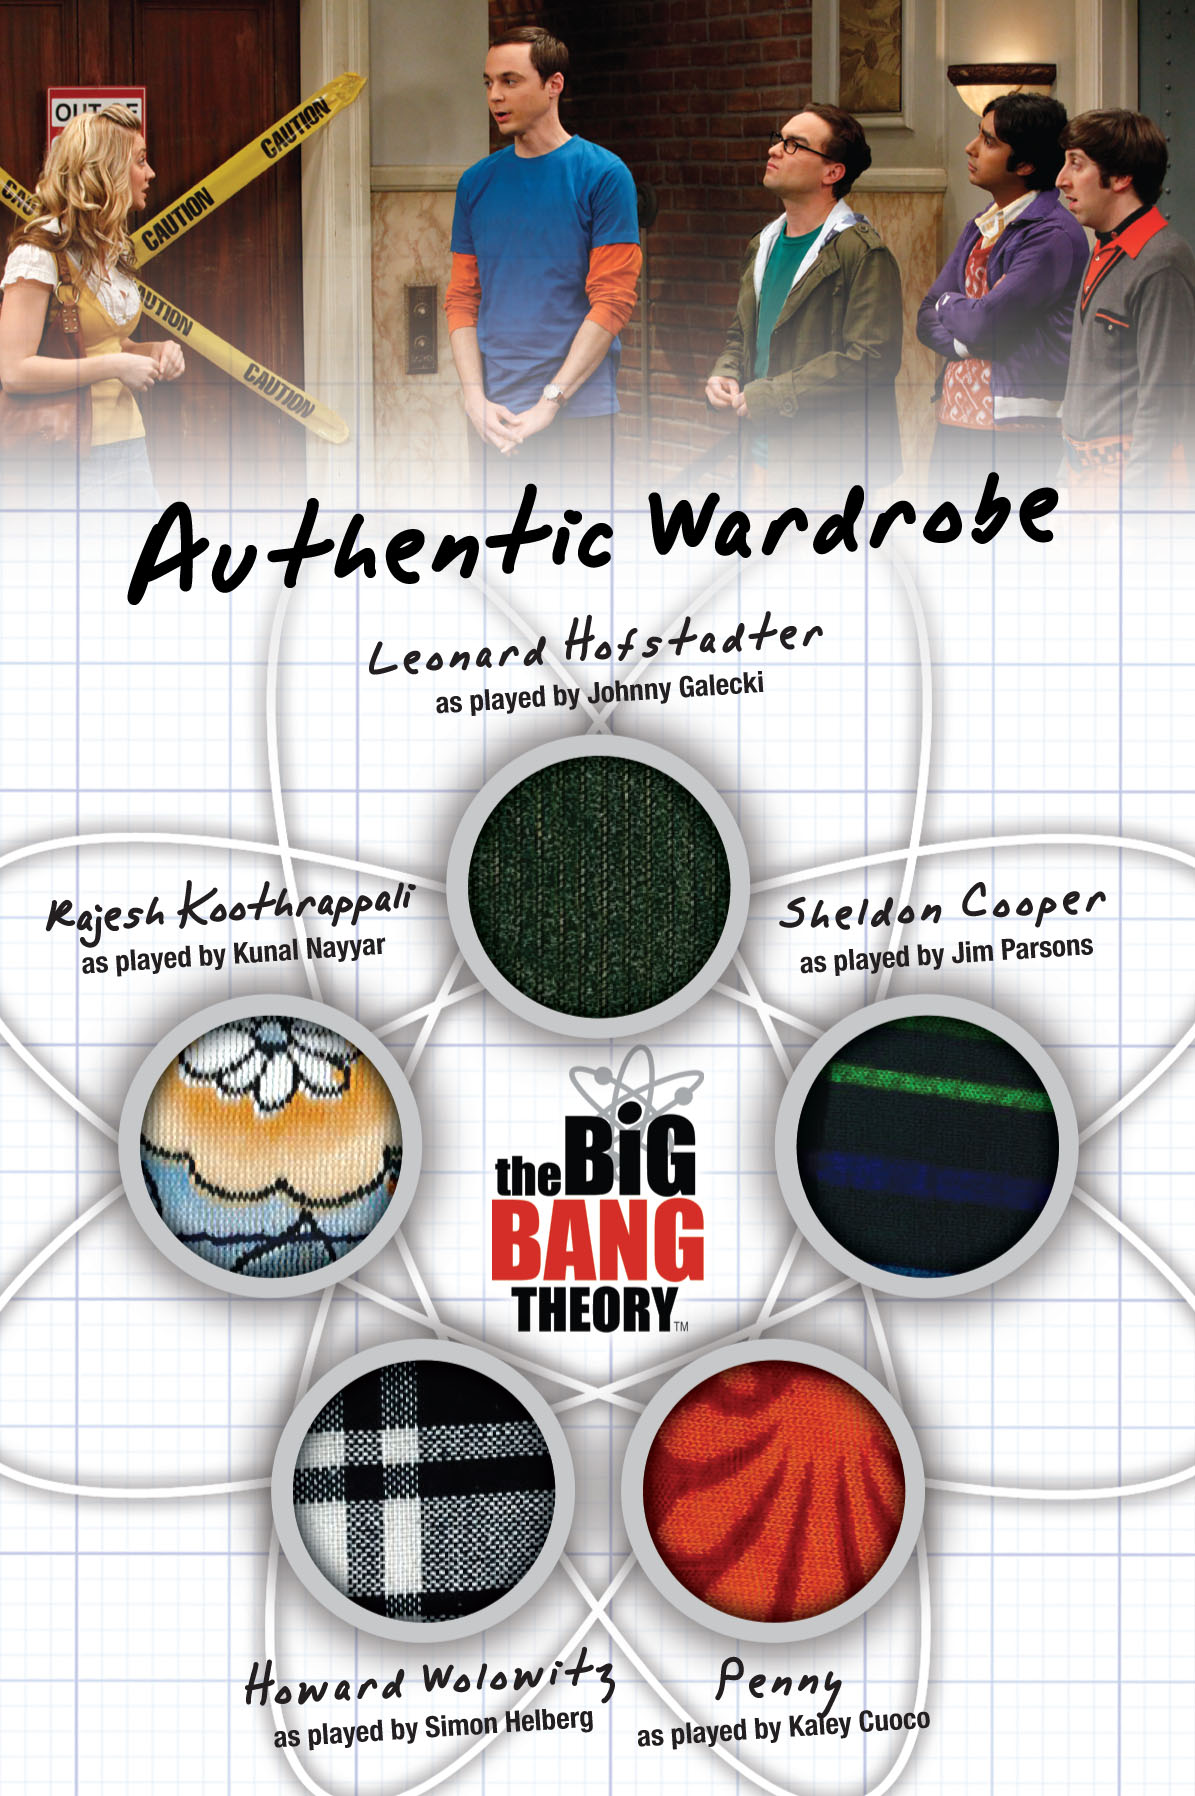 2012 Cryptozoic Big Bang Theory Oversized Wardrobe Card Image